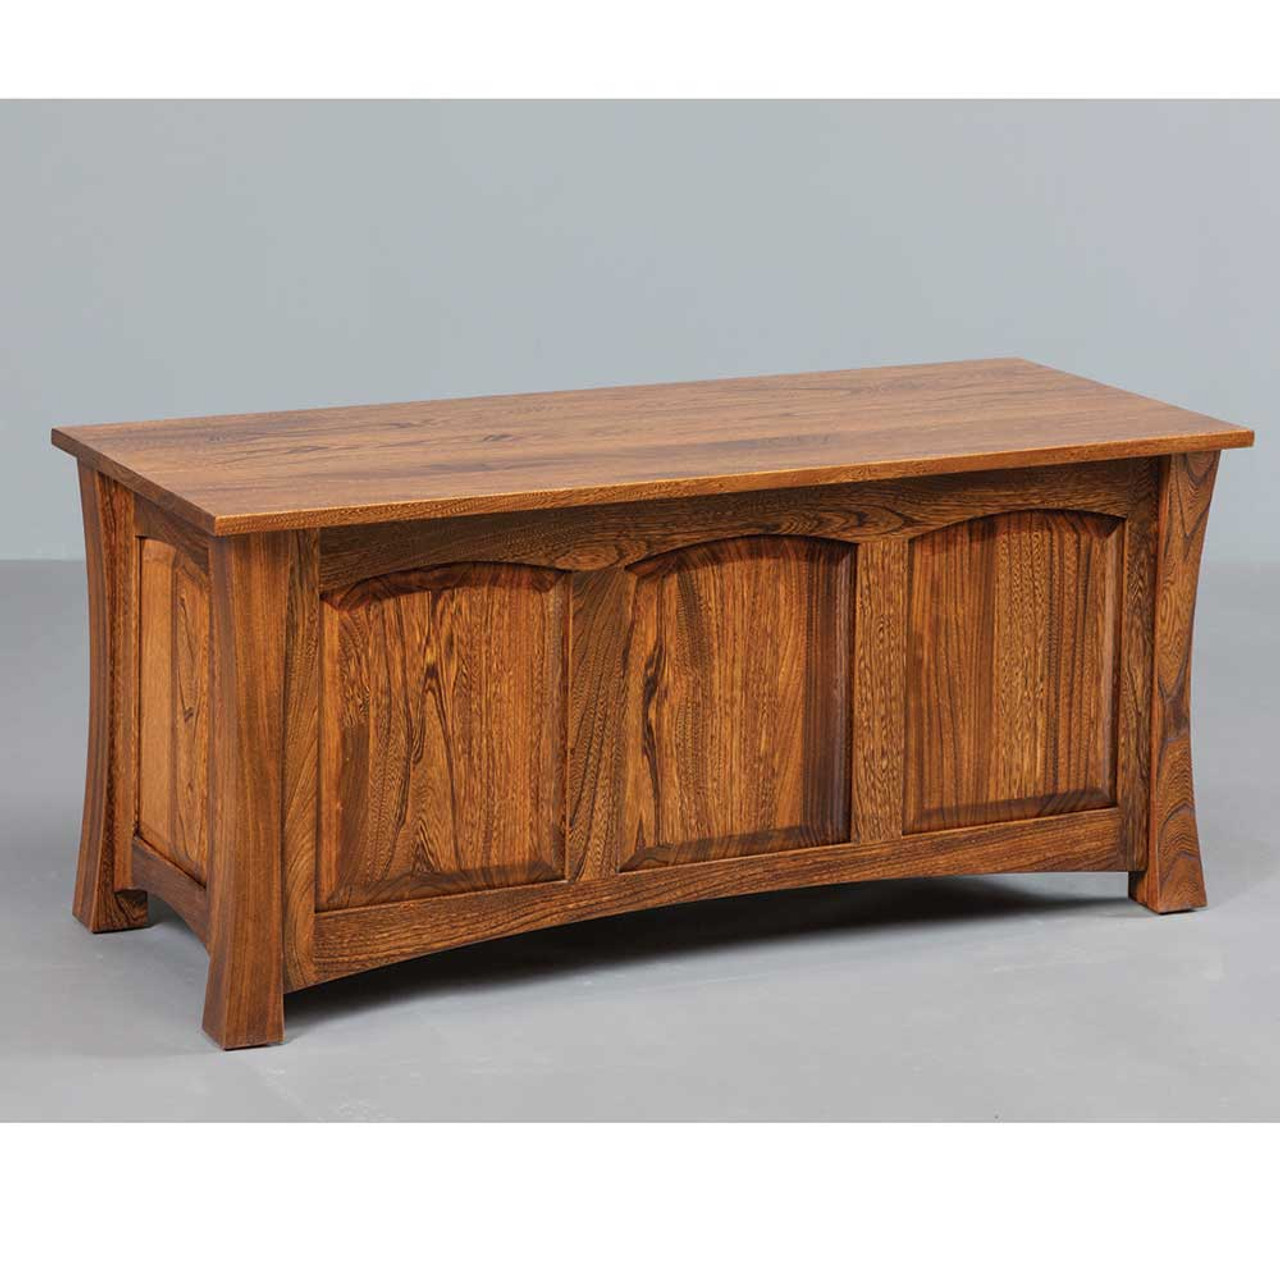 Hardwood Woodbury Blanket Chest | Cherry Valley Furniture